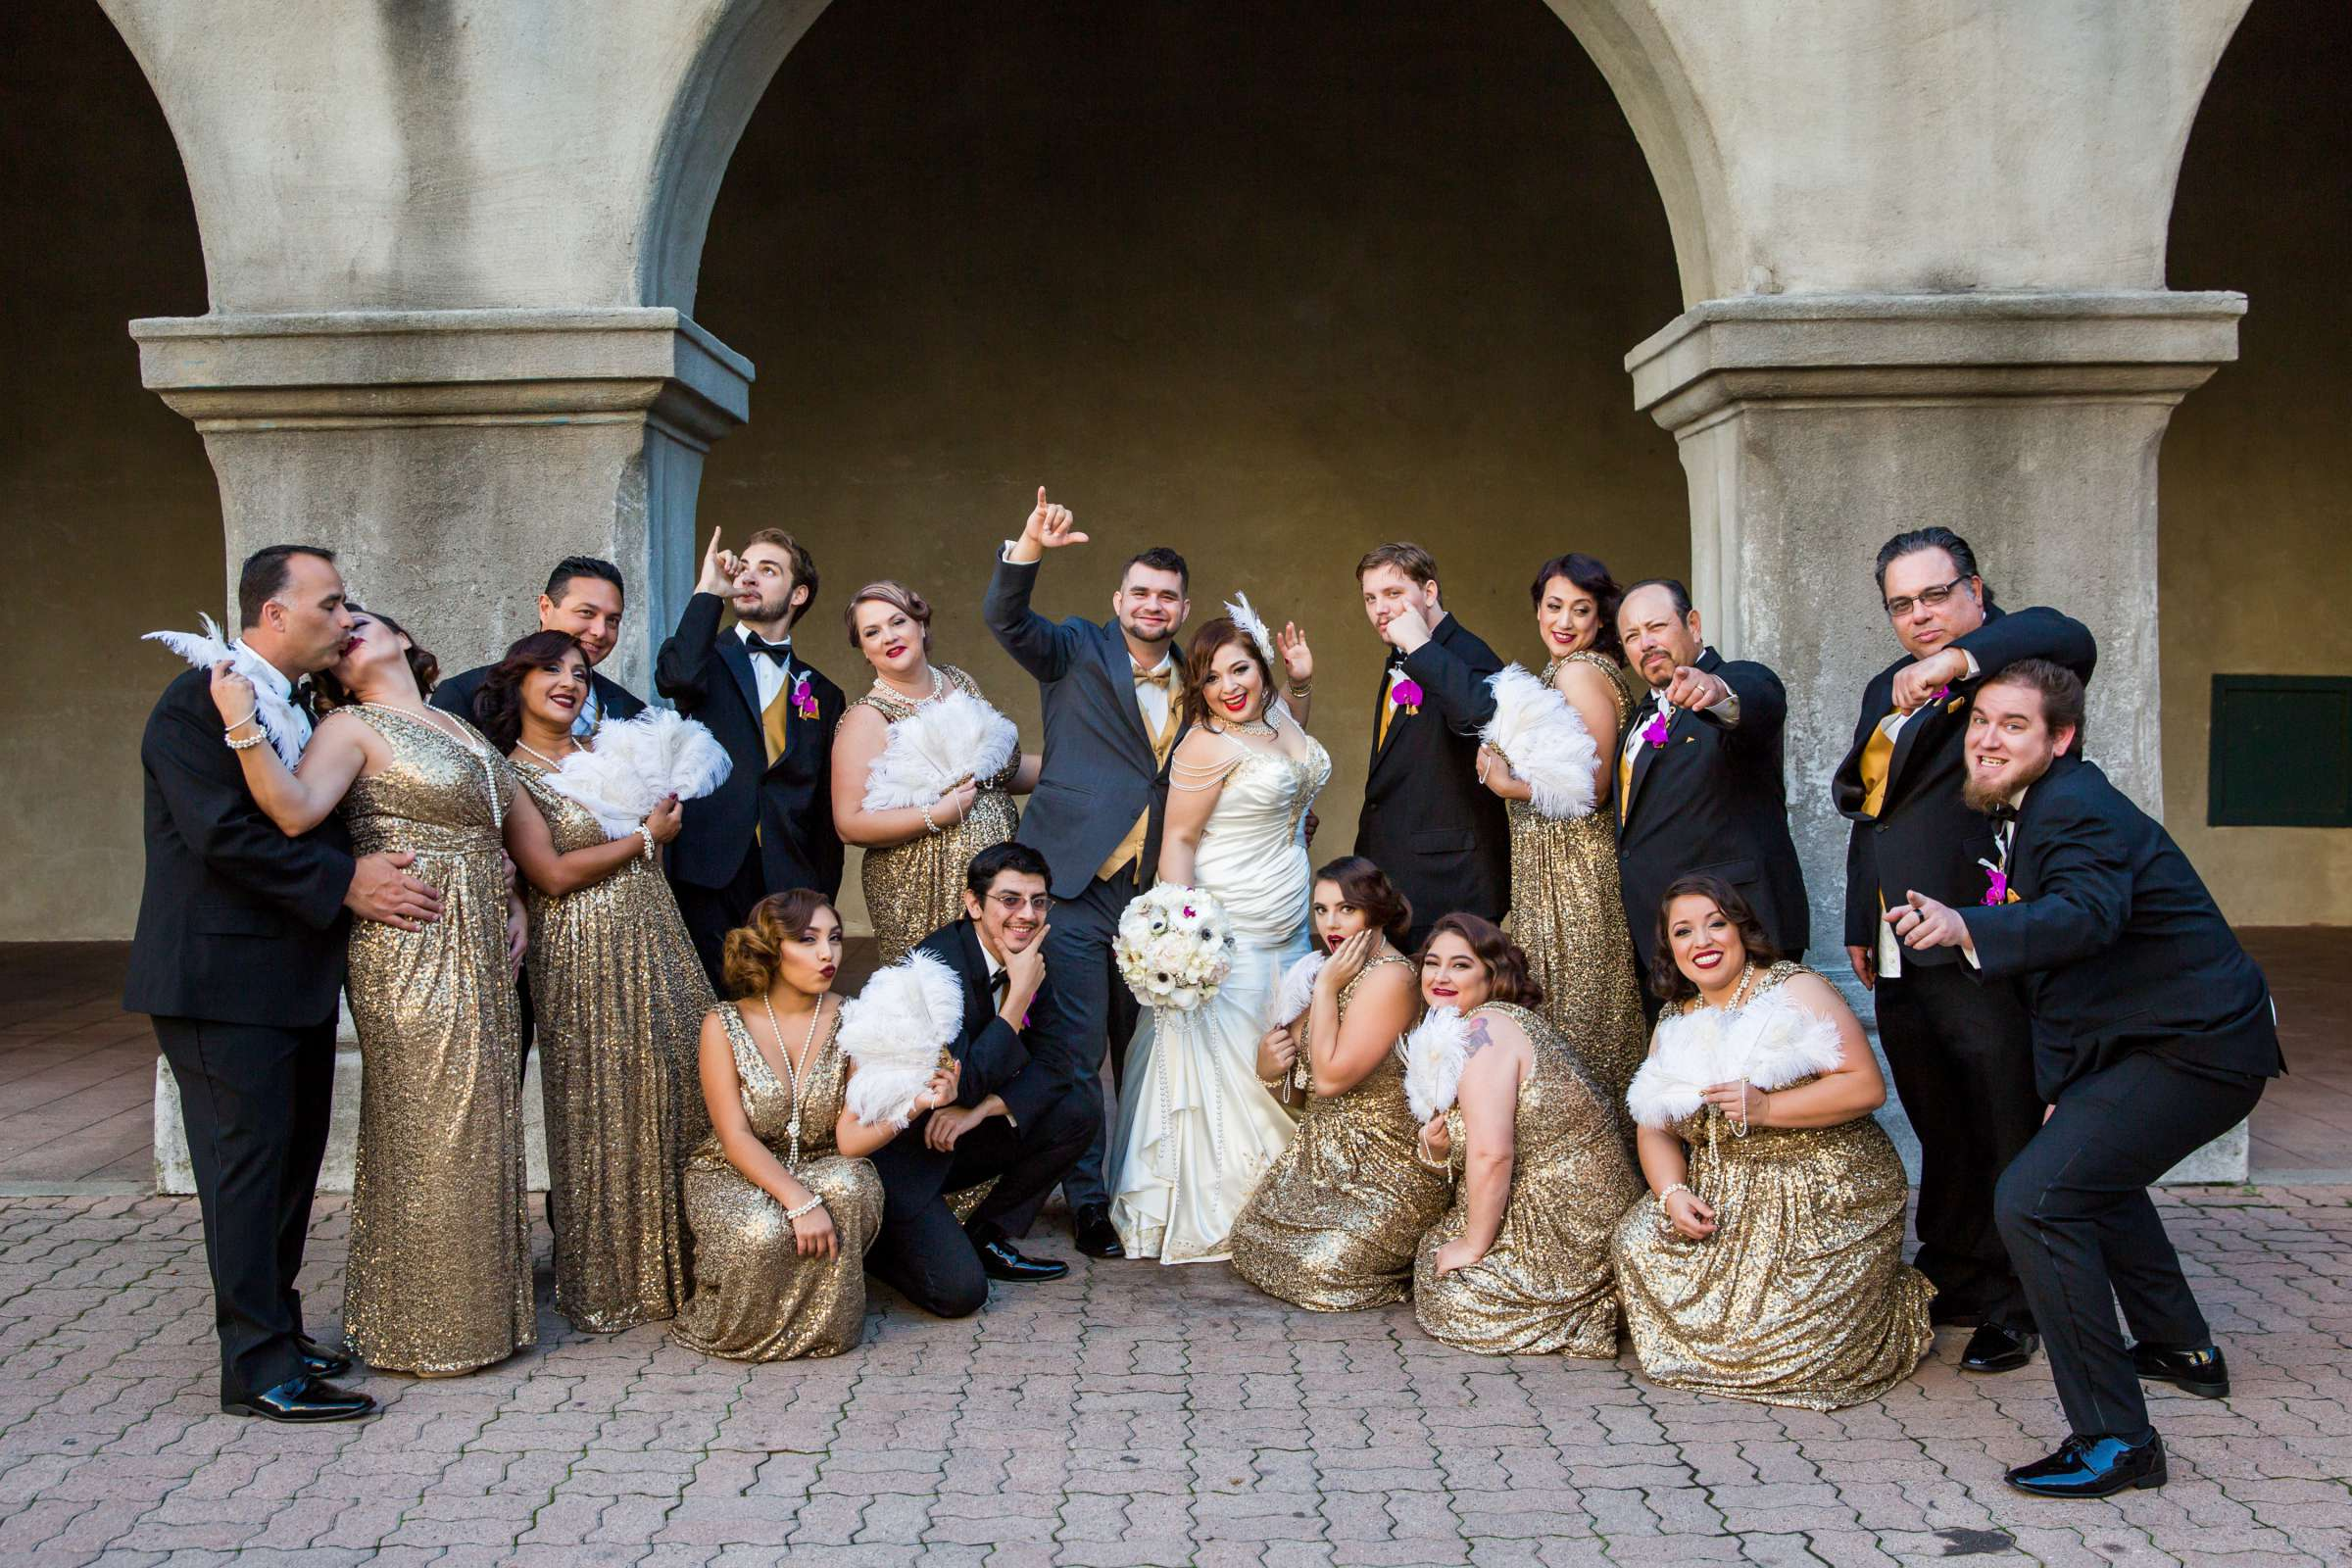 The Prado Wedding coordinated by Breezy Day Weddings, Aalis and Michael Wedding Photo #79 by True Photography